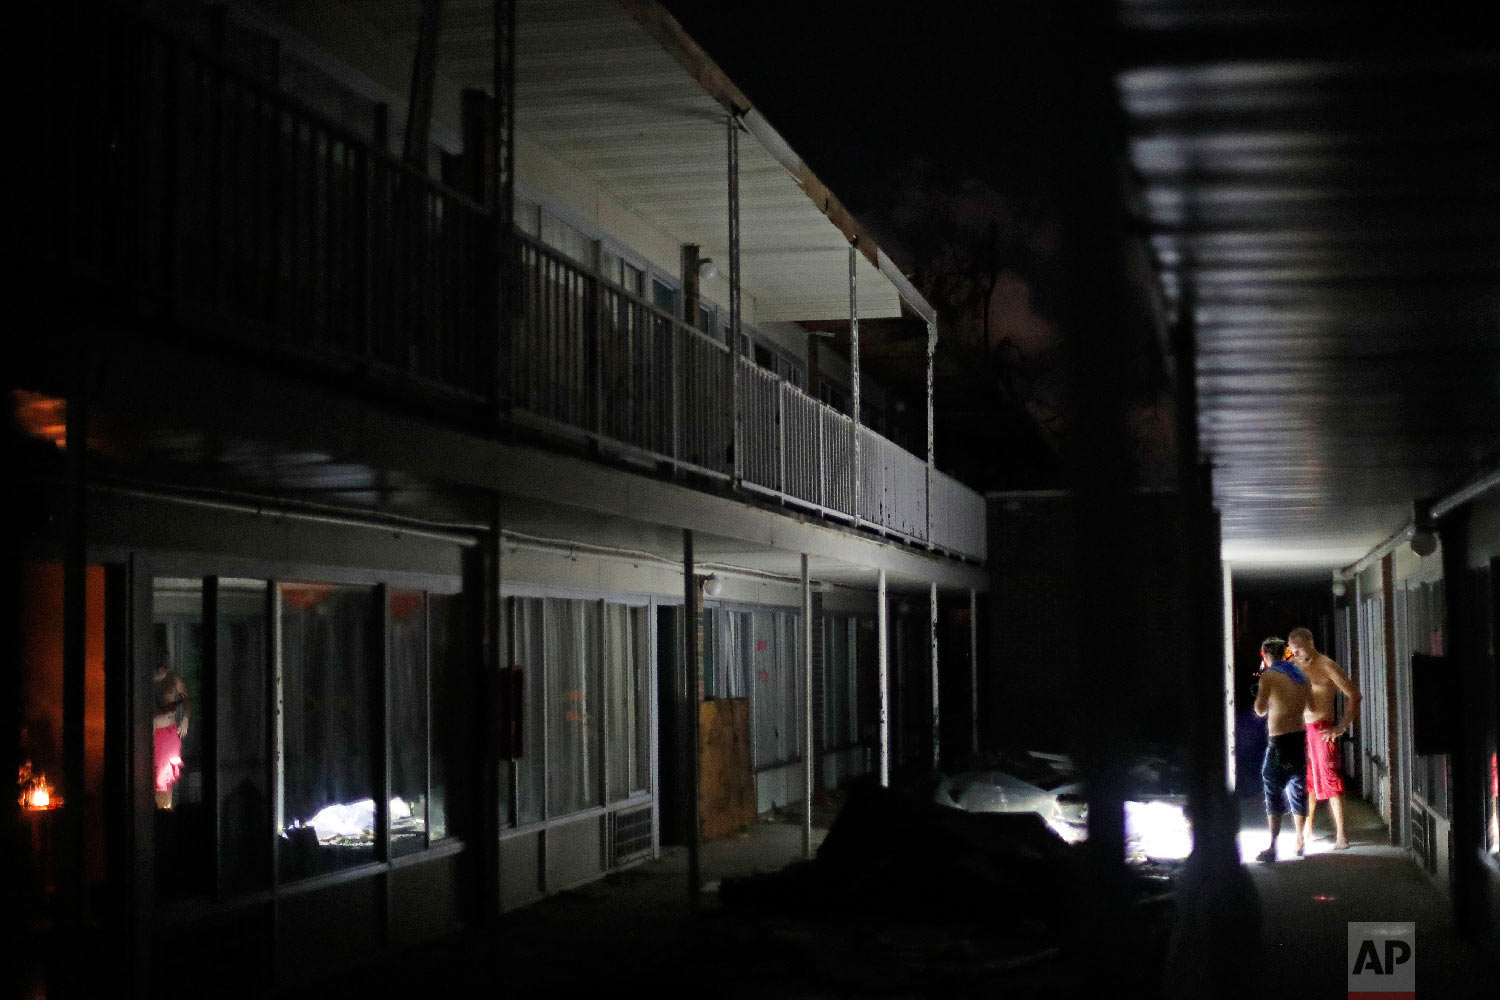 Residents use flashlights to navigate the dark walkways at night at the damaged American Quality Lodge where they continue to live in the aftermath of Hurricane Michael, in Panama City, Fla., Oct. 16, 2018. (AP Photo/David Goldman)